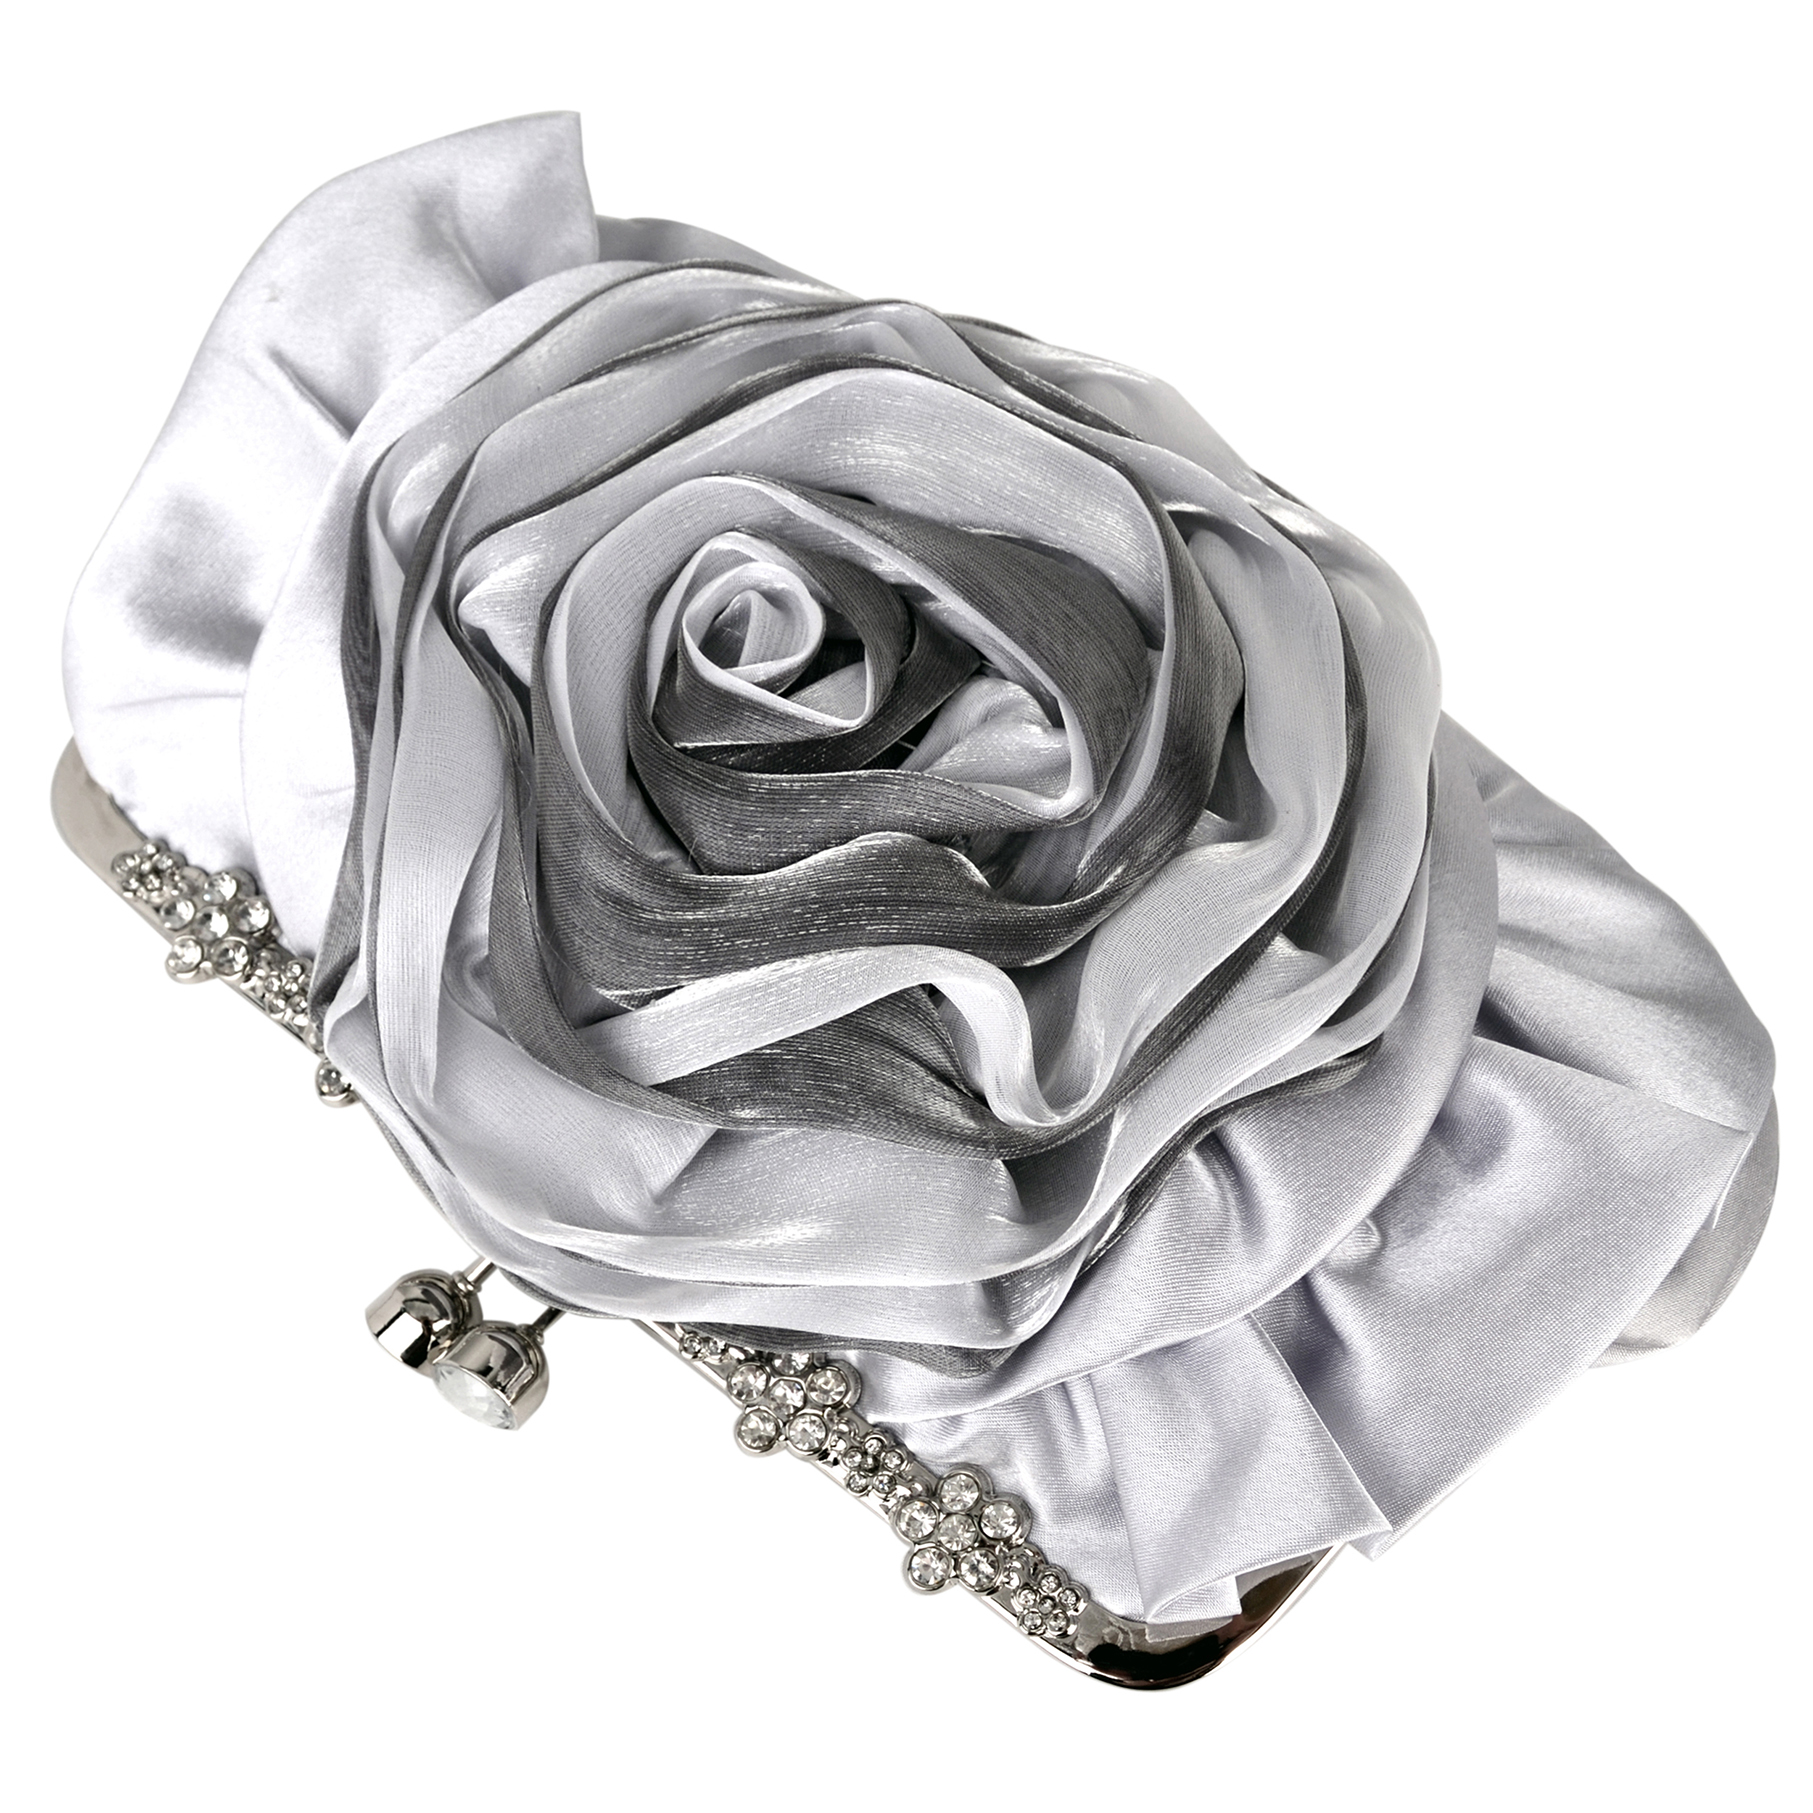 Rose blossom silver evening clutch purse top image